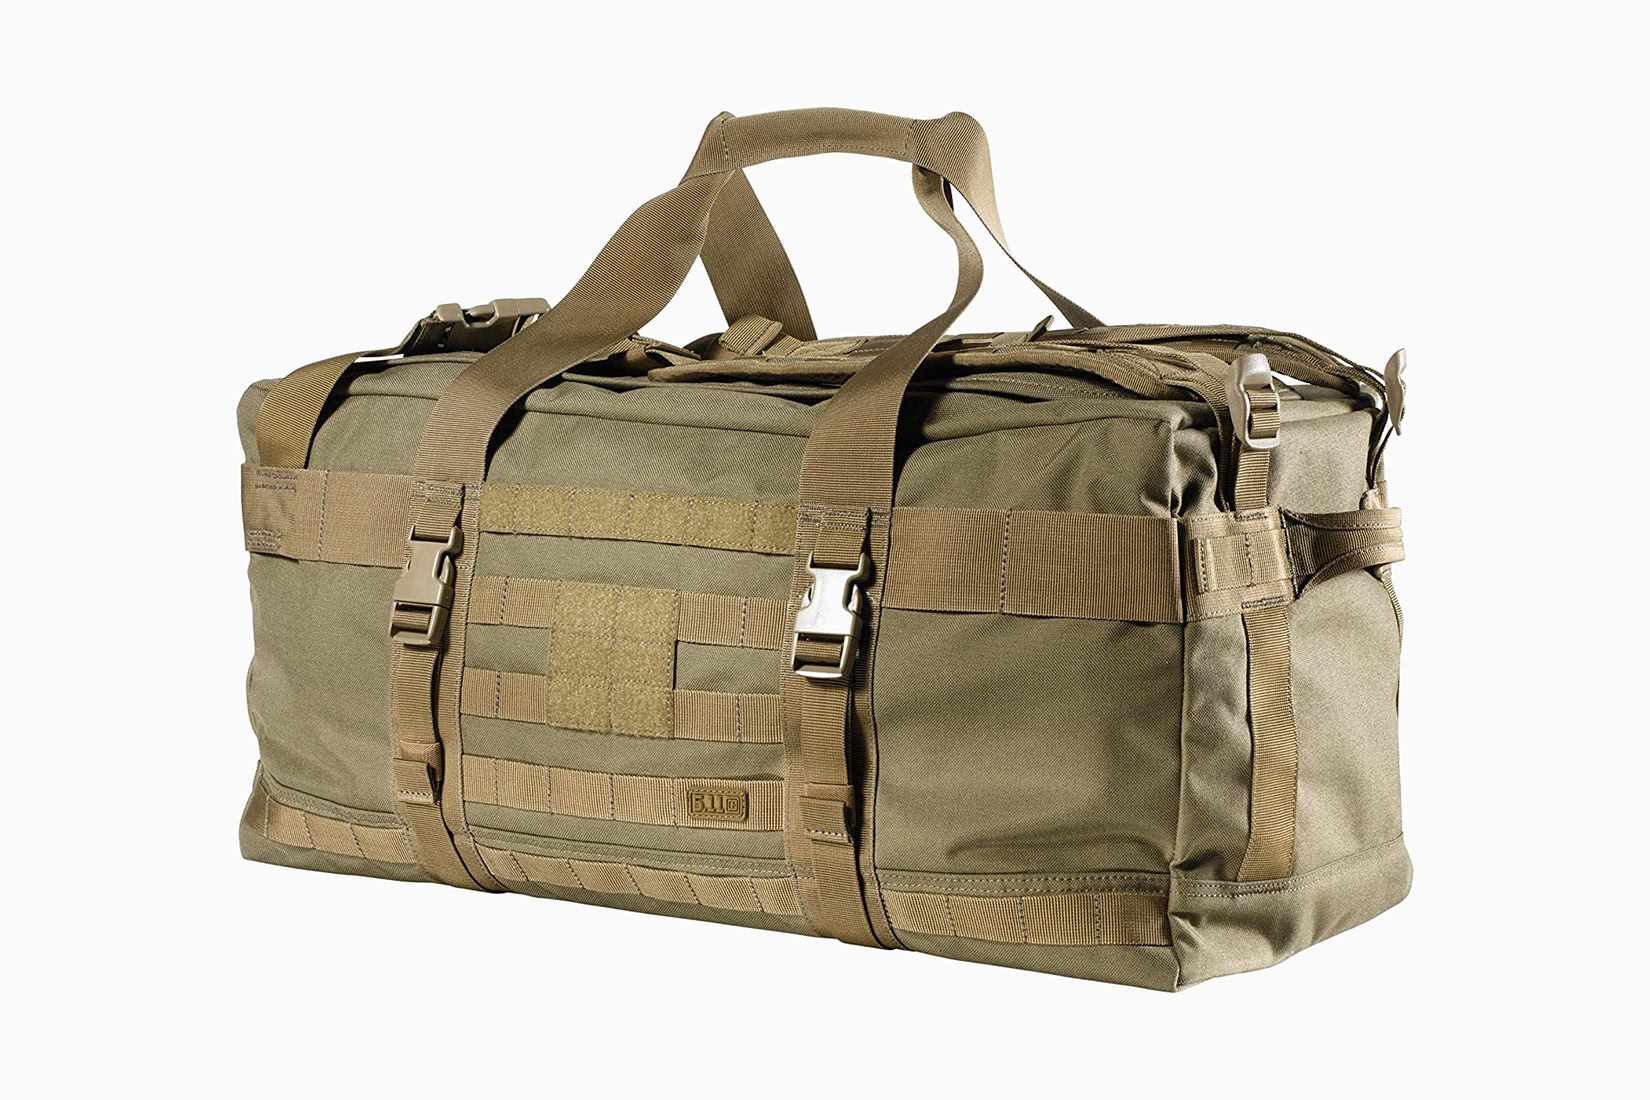 best duffel bags military 5.110 rush LBD - Luxe Digital